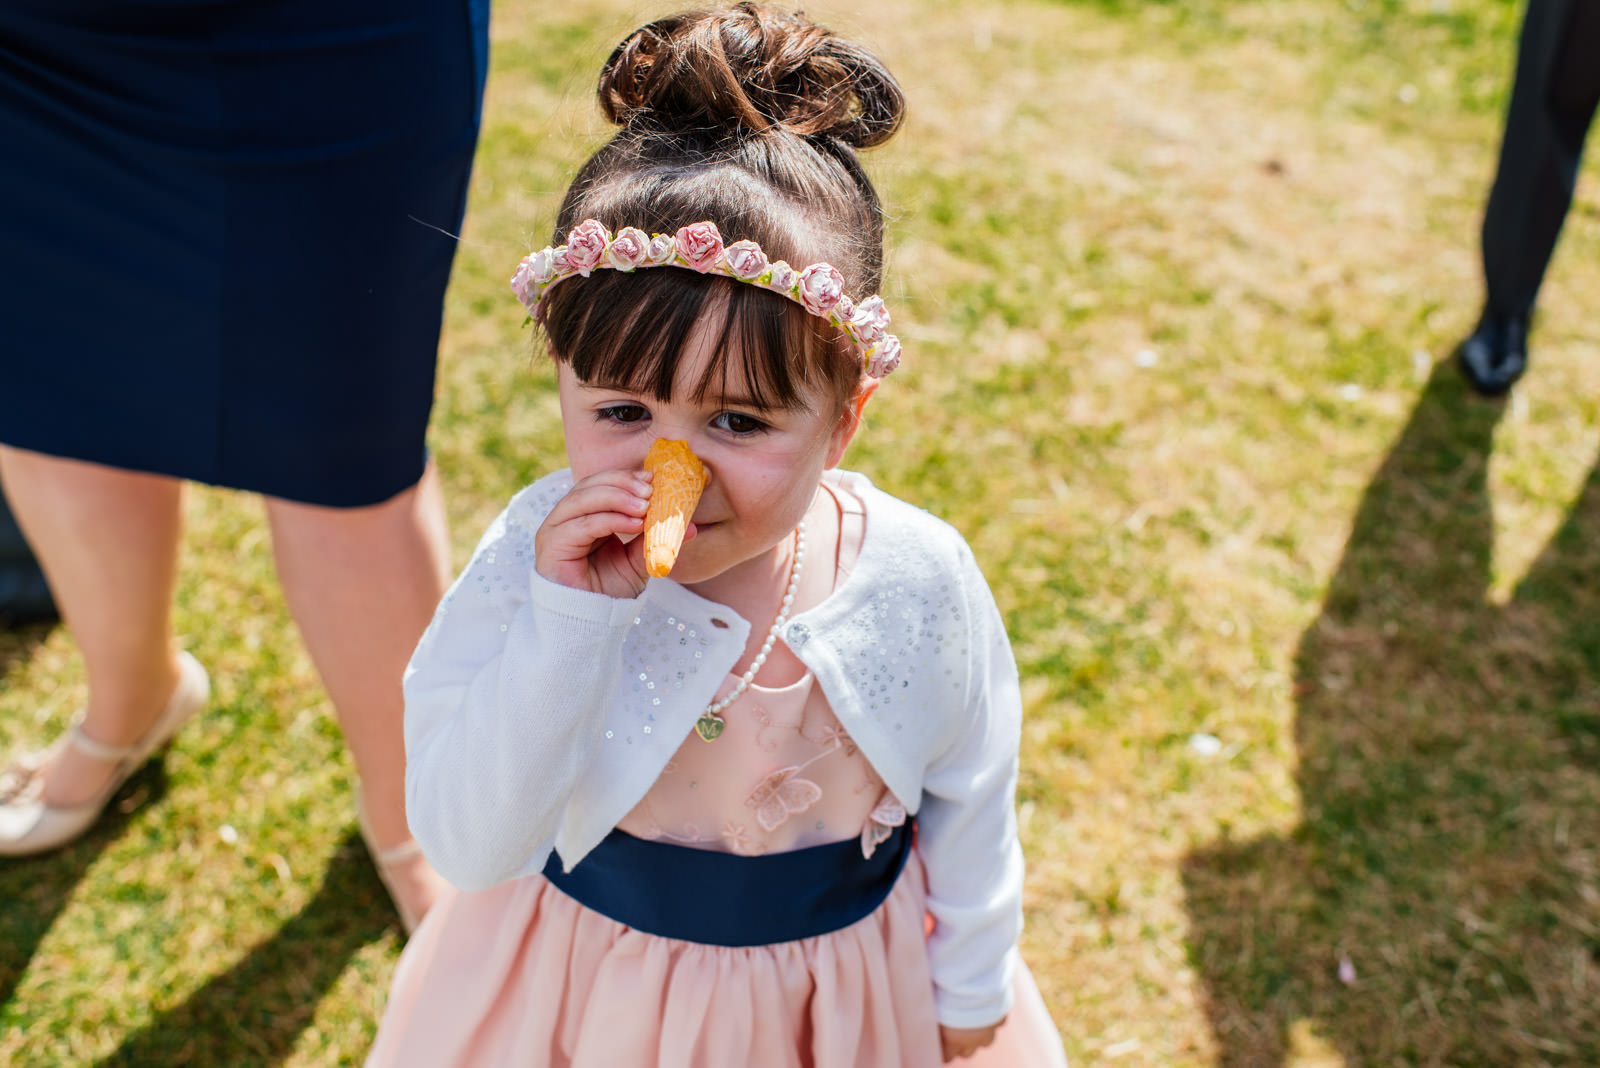 Flower girl with ice cream cone nose